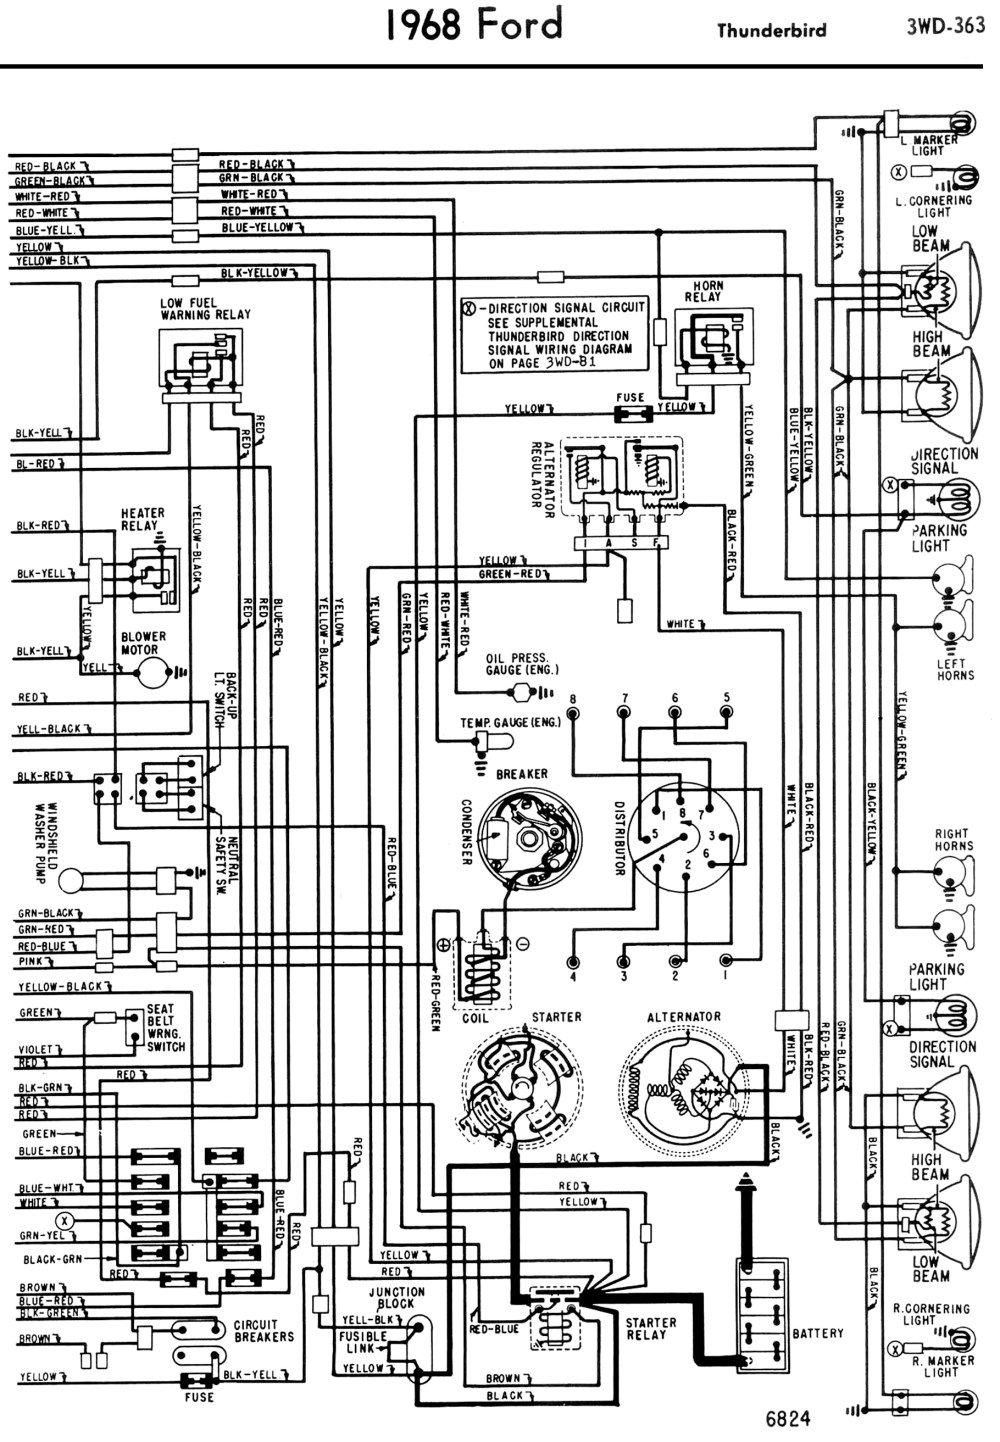 medium resolution of 1968 ford wiring diagram tail lights